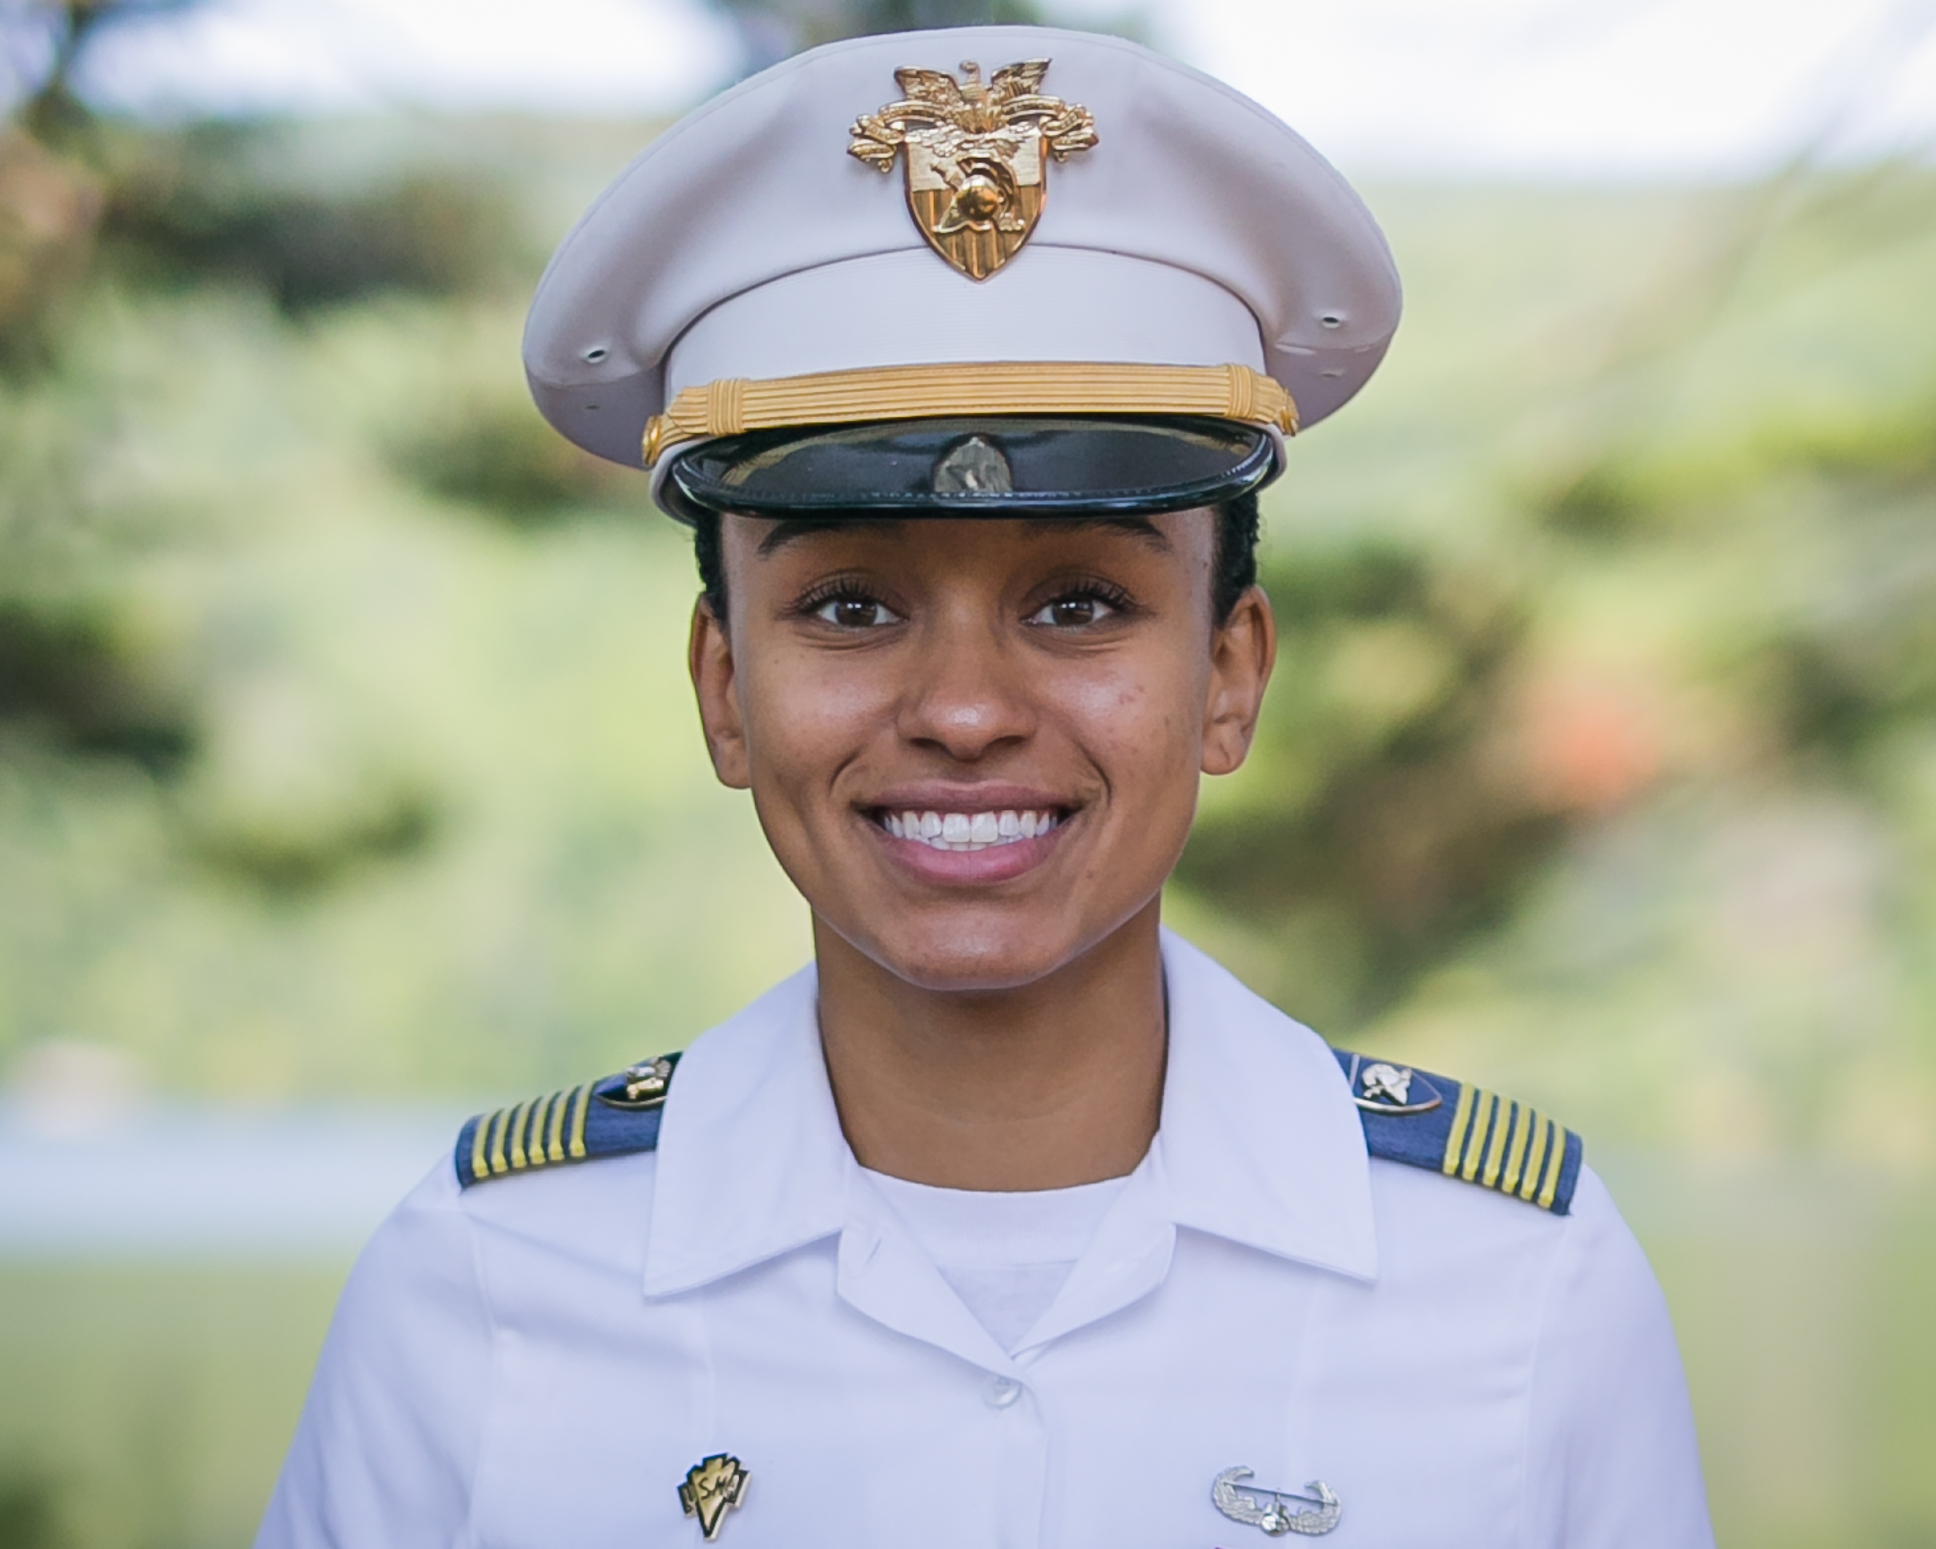 10 SIMONE ASKEW - is first black woman to serve as West Point's first Captain